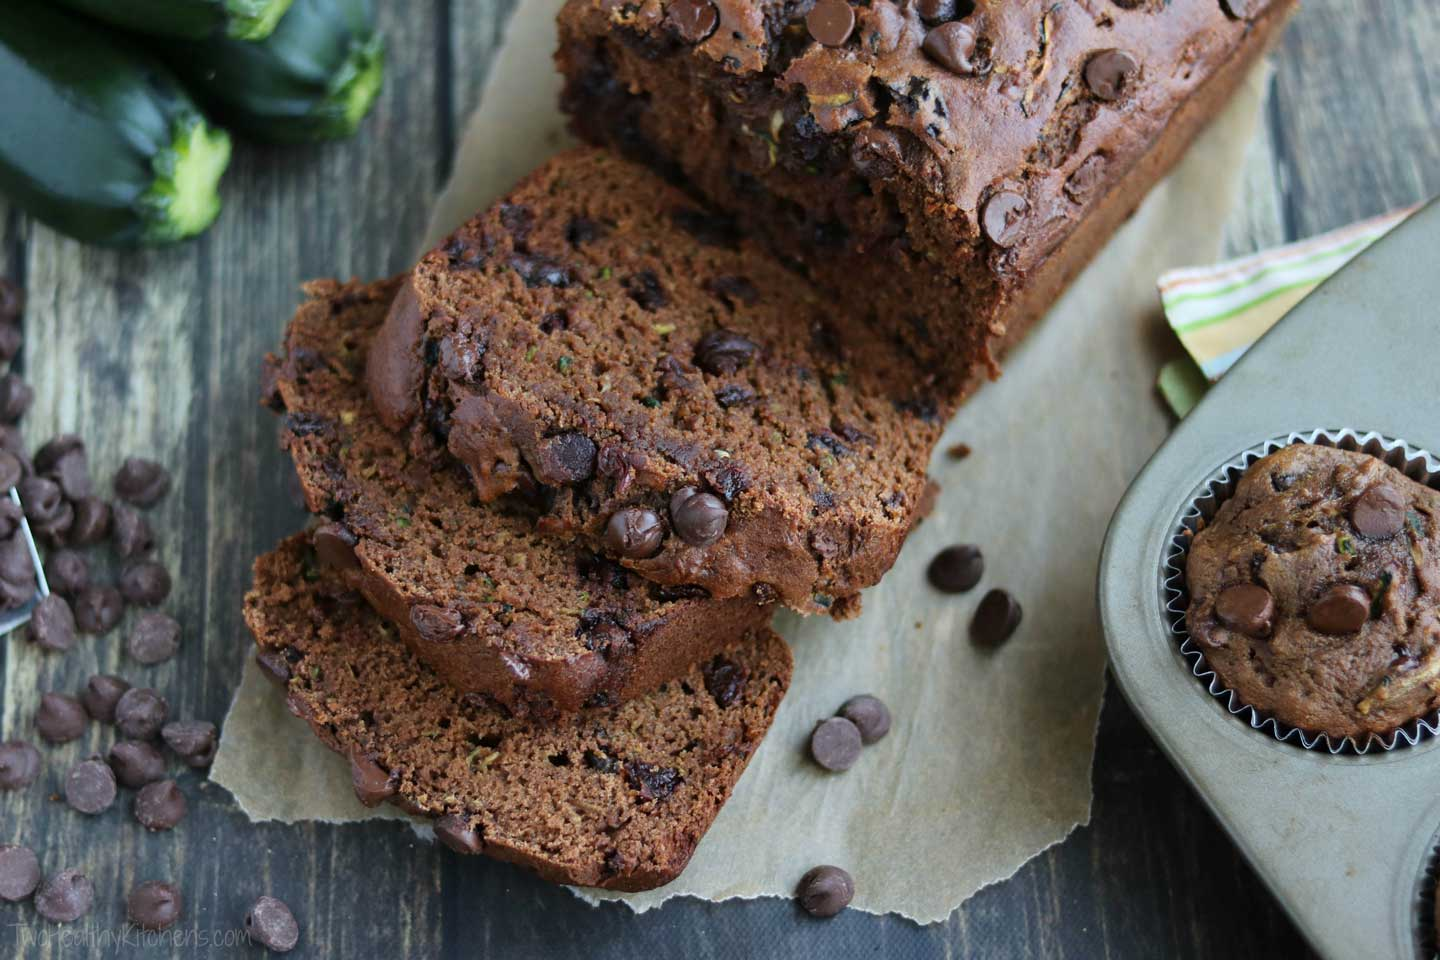 Luscious cherries & two layers of chocolate flavor! This decadent, rich Chocolate Zucchini Bread is dense, luxuriously moist, and studded with chocolate chips. Truly a chocolate lover's dream! And it's a healthy zucchini bread recipe full of whole grains and very little extra fats! For quicker baking, this is a perfect zucchini muffin recipe, too! And this easy zucchini bread freezes beautifully – make a double batch to freeze for later, or to give as homemade gifts! | www.TwoHealthyKitchens.com